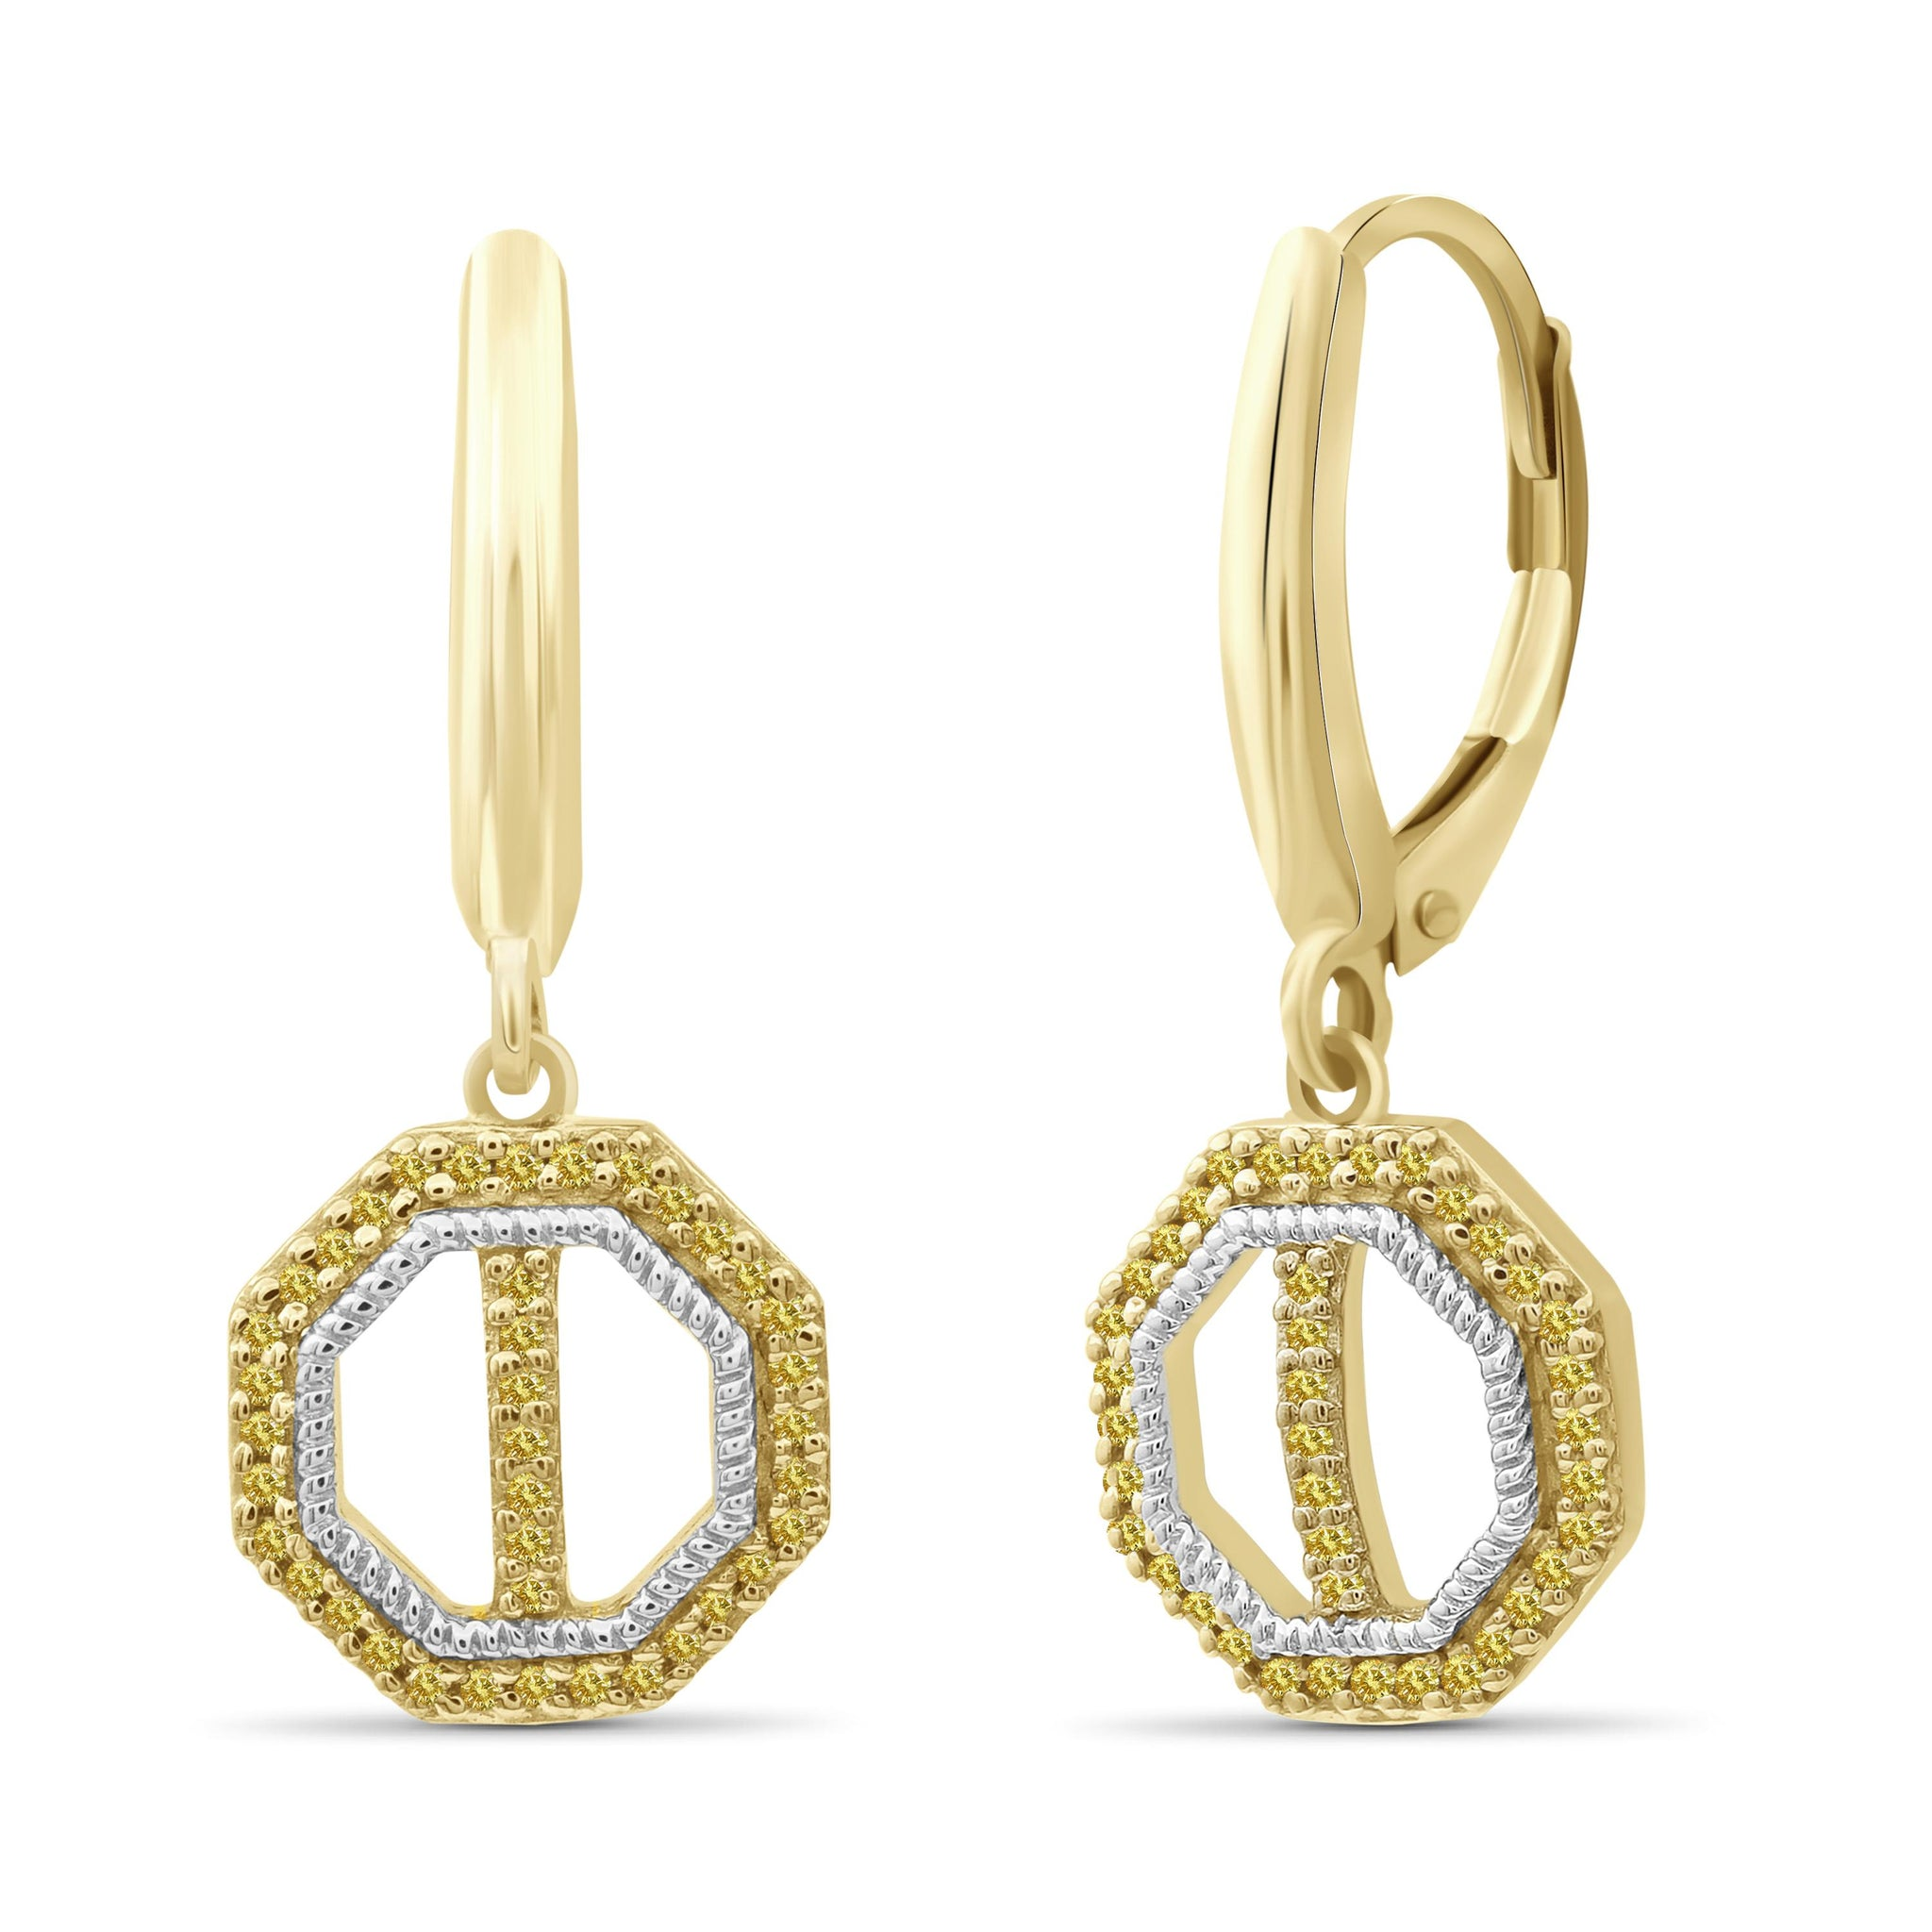 JewelonFire 1/7 Carat T.W. Yellow Diamond Two Tone Silver Octagon Earrings